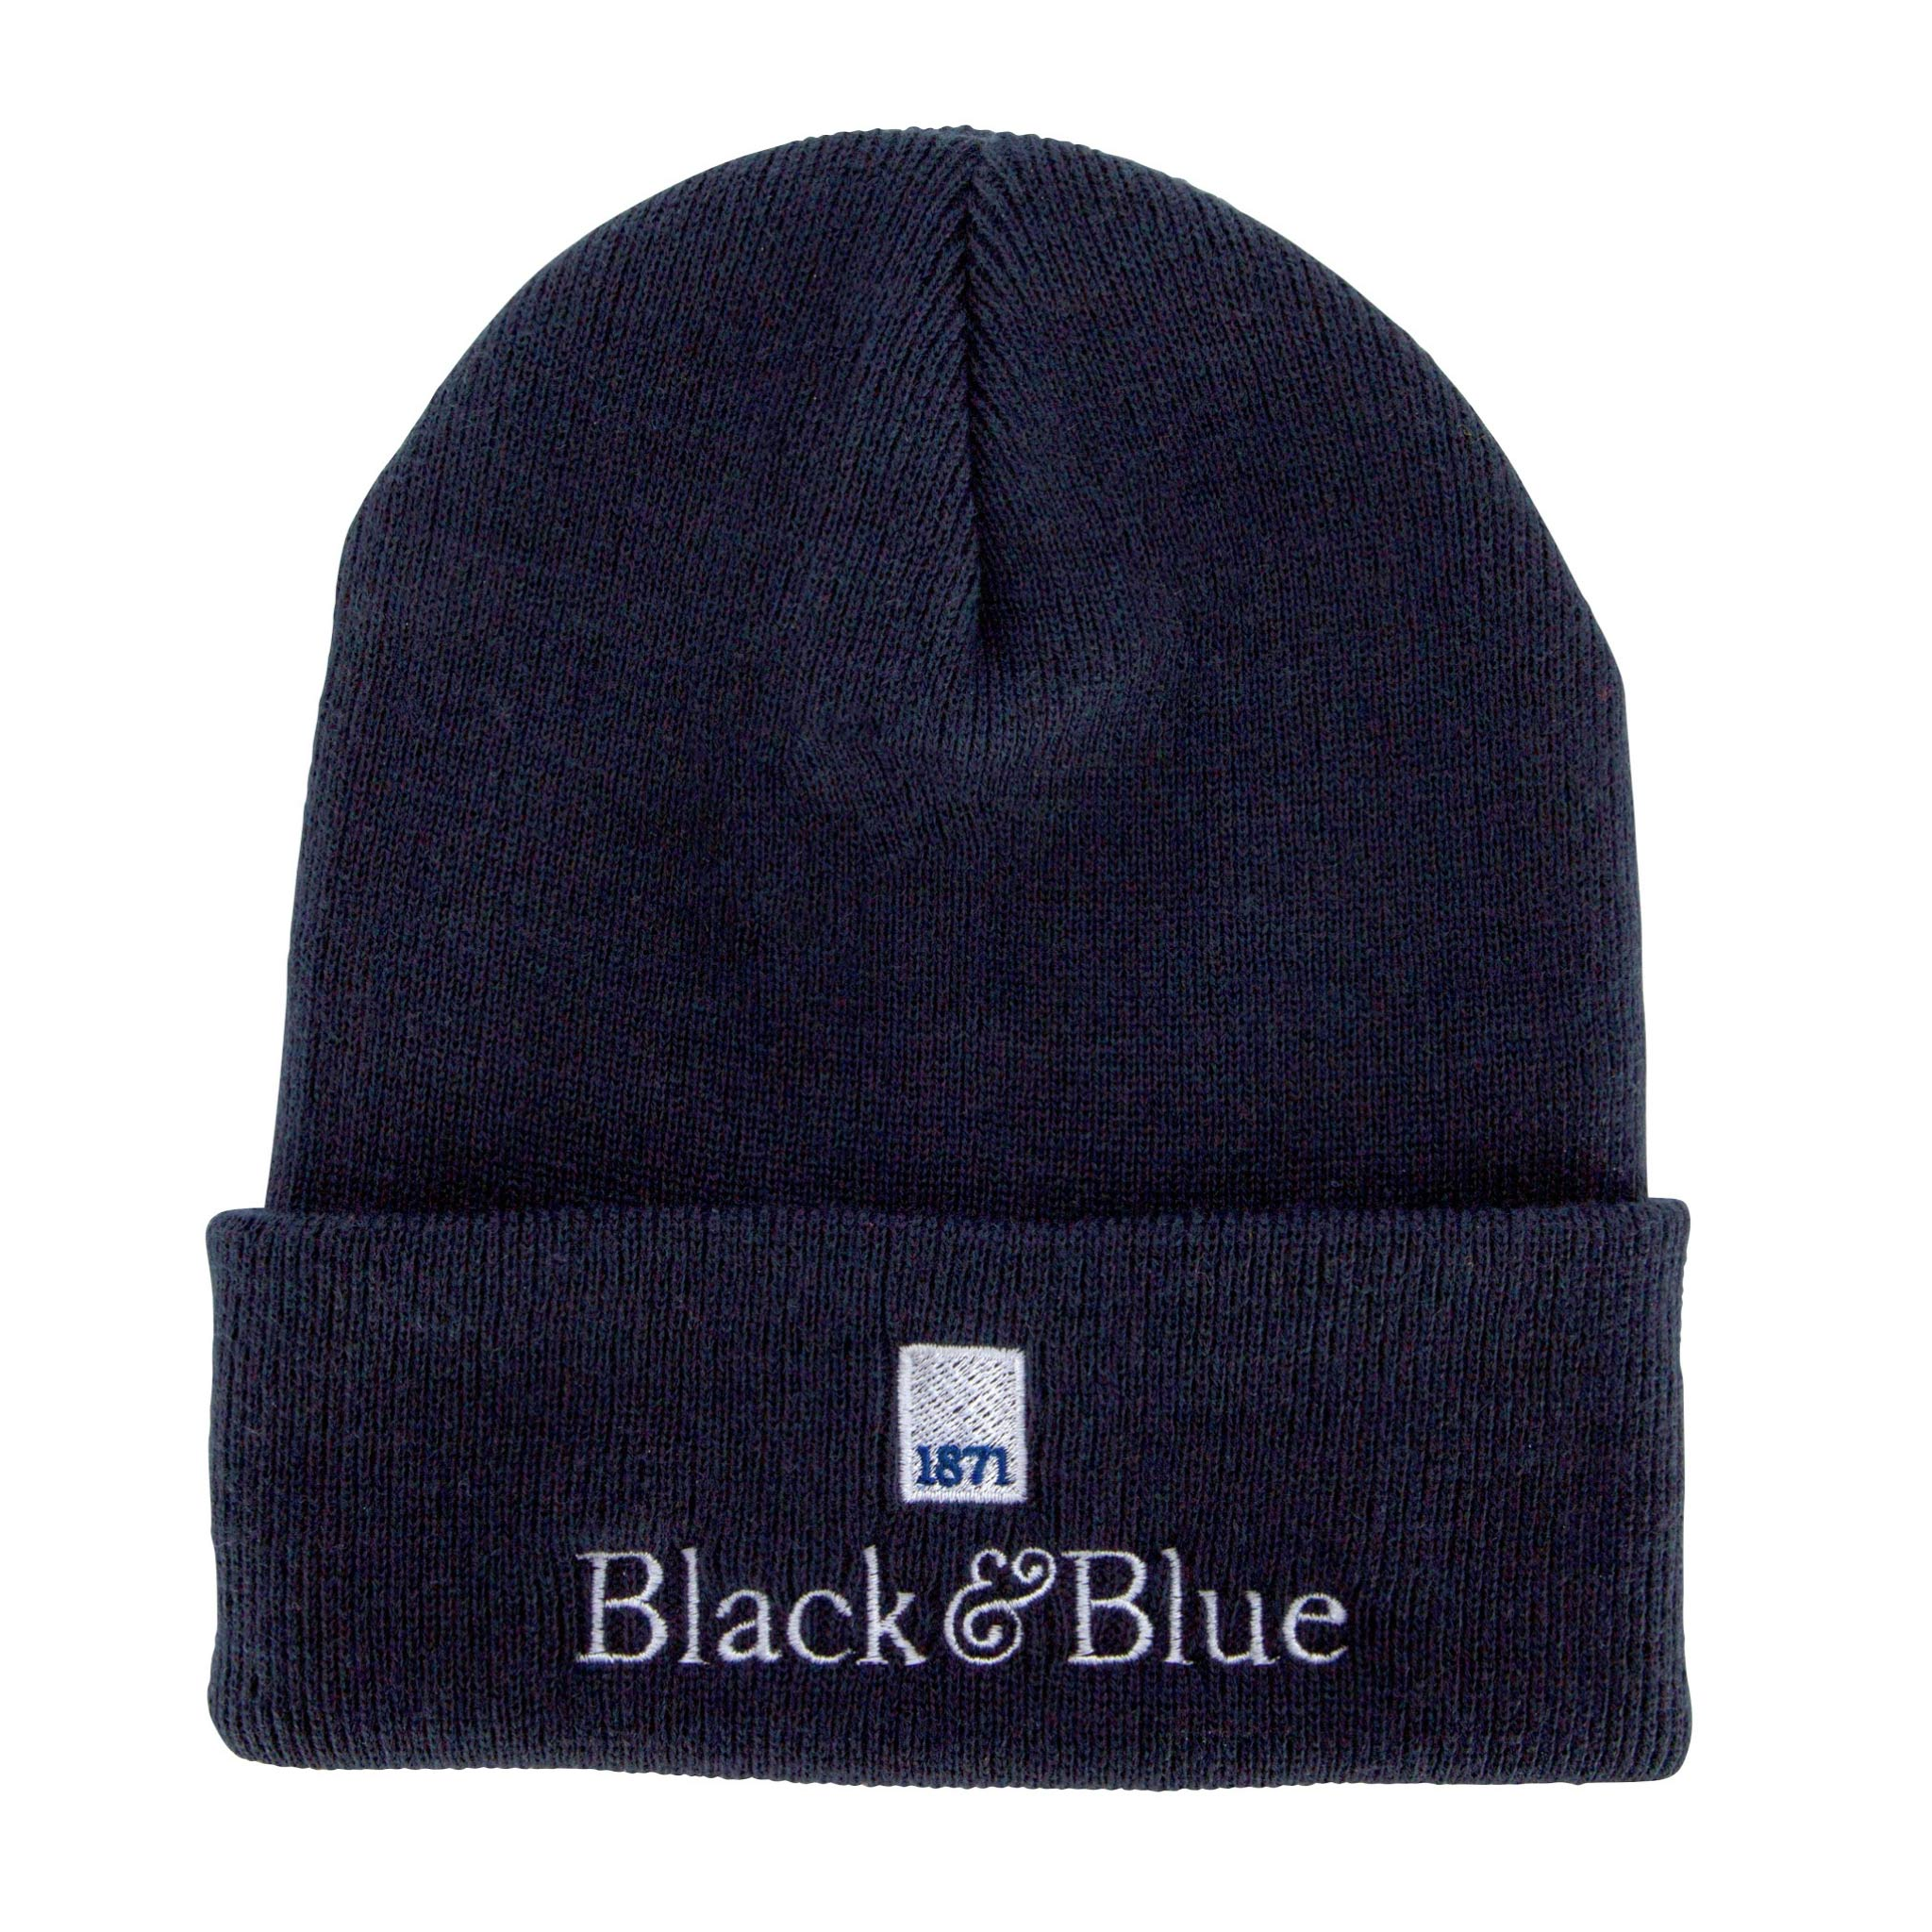 Black and Blue 1871 beanie